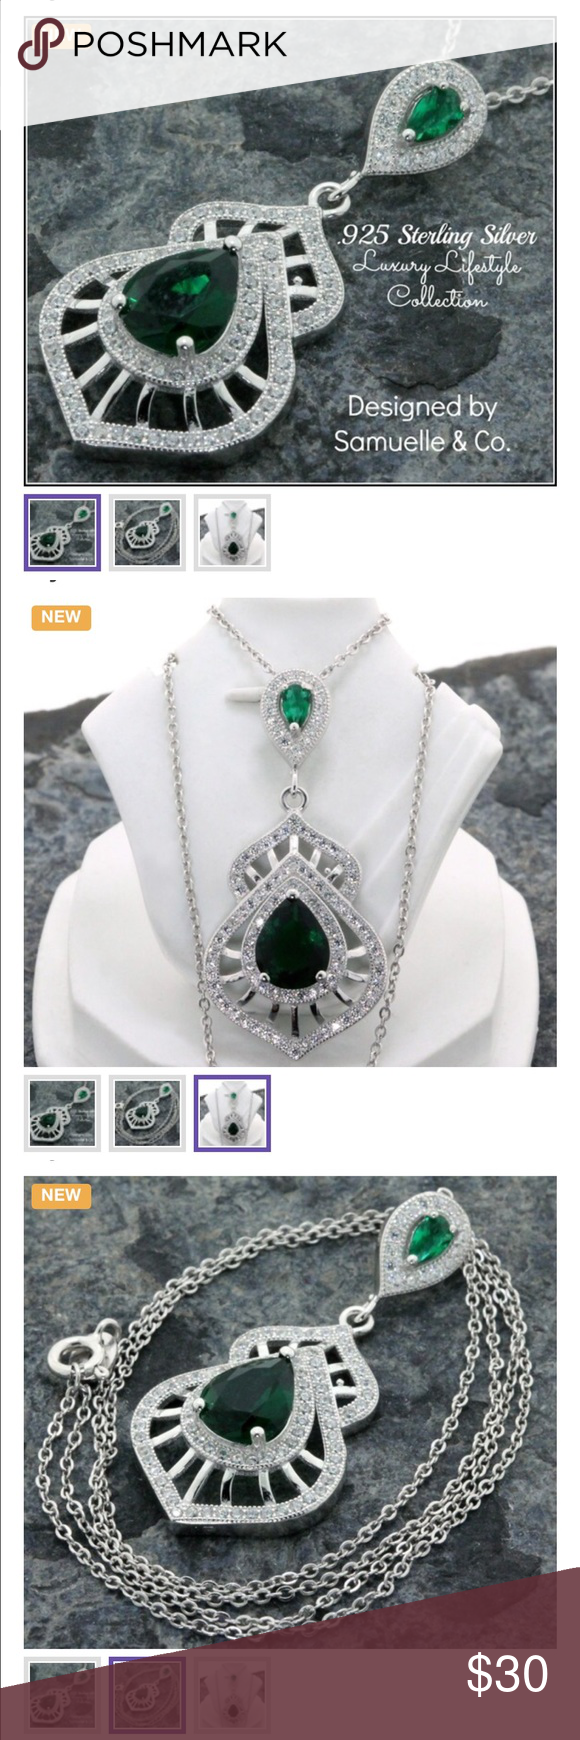 .925 SS, Emerald & Australian Cz's Necklace This beautiful Necklace contains 5.00ctw of Emerald & AAA Grade Australian Cz's which are flawlessly set in .925 Sterling Silver with a Platinum Overlay. This truly shows the stunning quality and craftsmanship. Total weight for this Necklace is 5.5 grams. The pendant measures 1 1/2 inches long. The chain is 18 inches long. Samuelle & Co Jewelry Necklaces